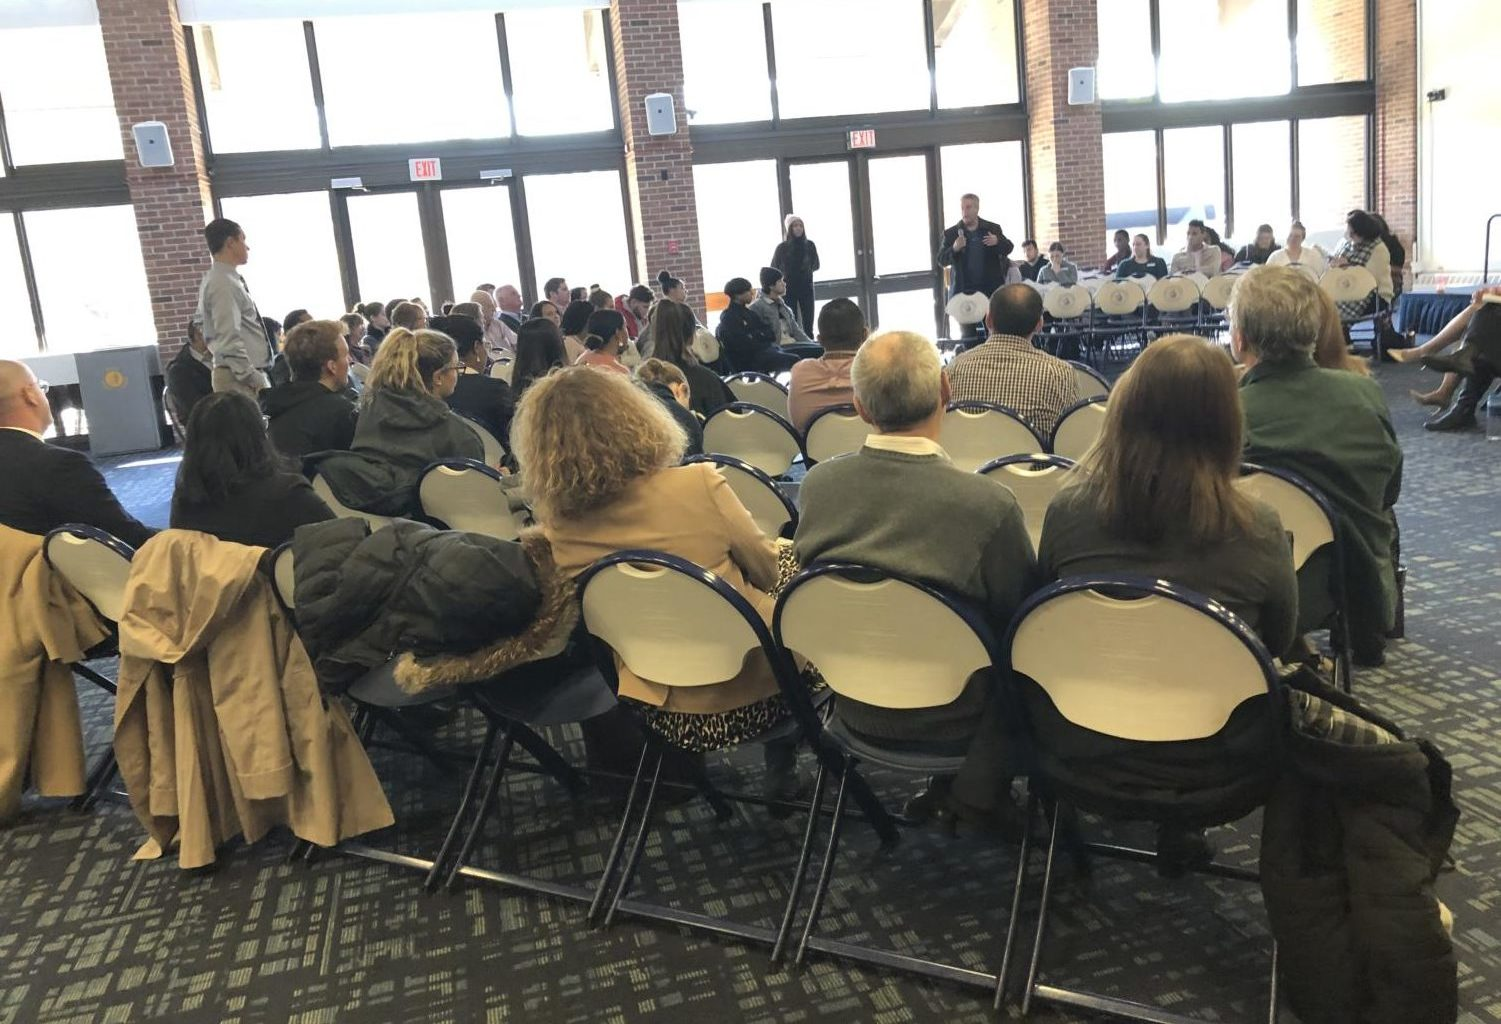 On Wednesday, November 13th, students and faculty got the chance to voice their questions and concerns about any and all aspects of university life at the Fall 2019 Pace Pleasantville Town Hall